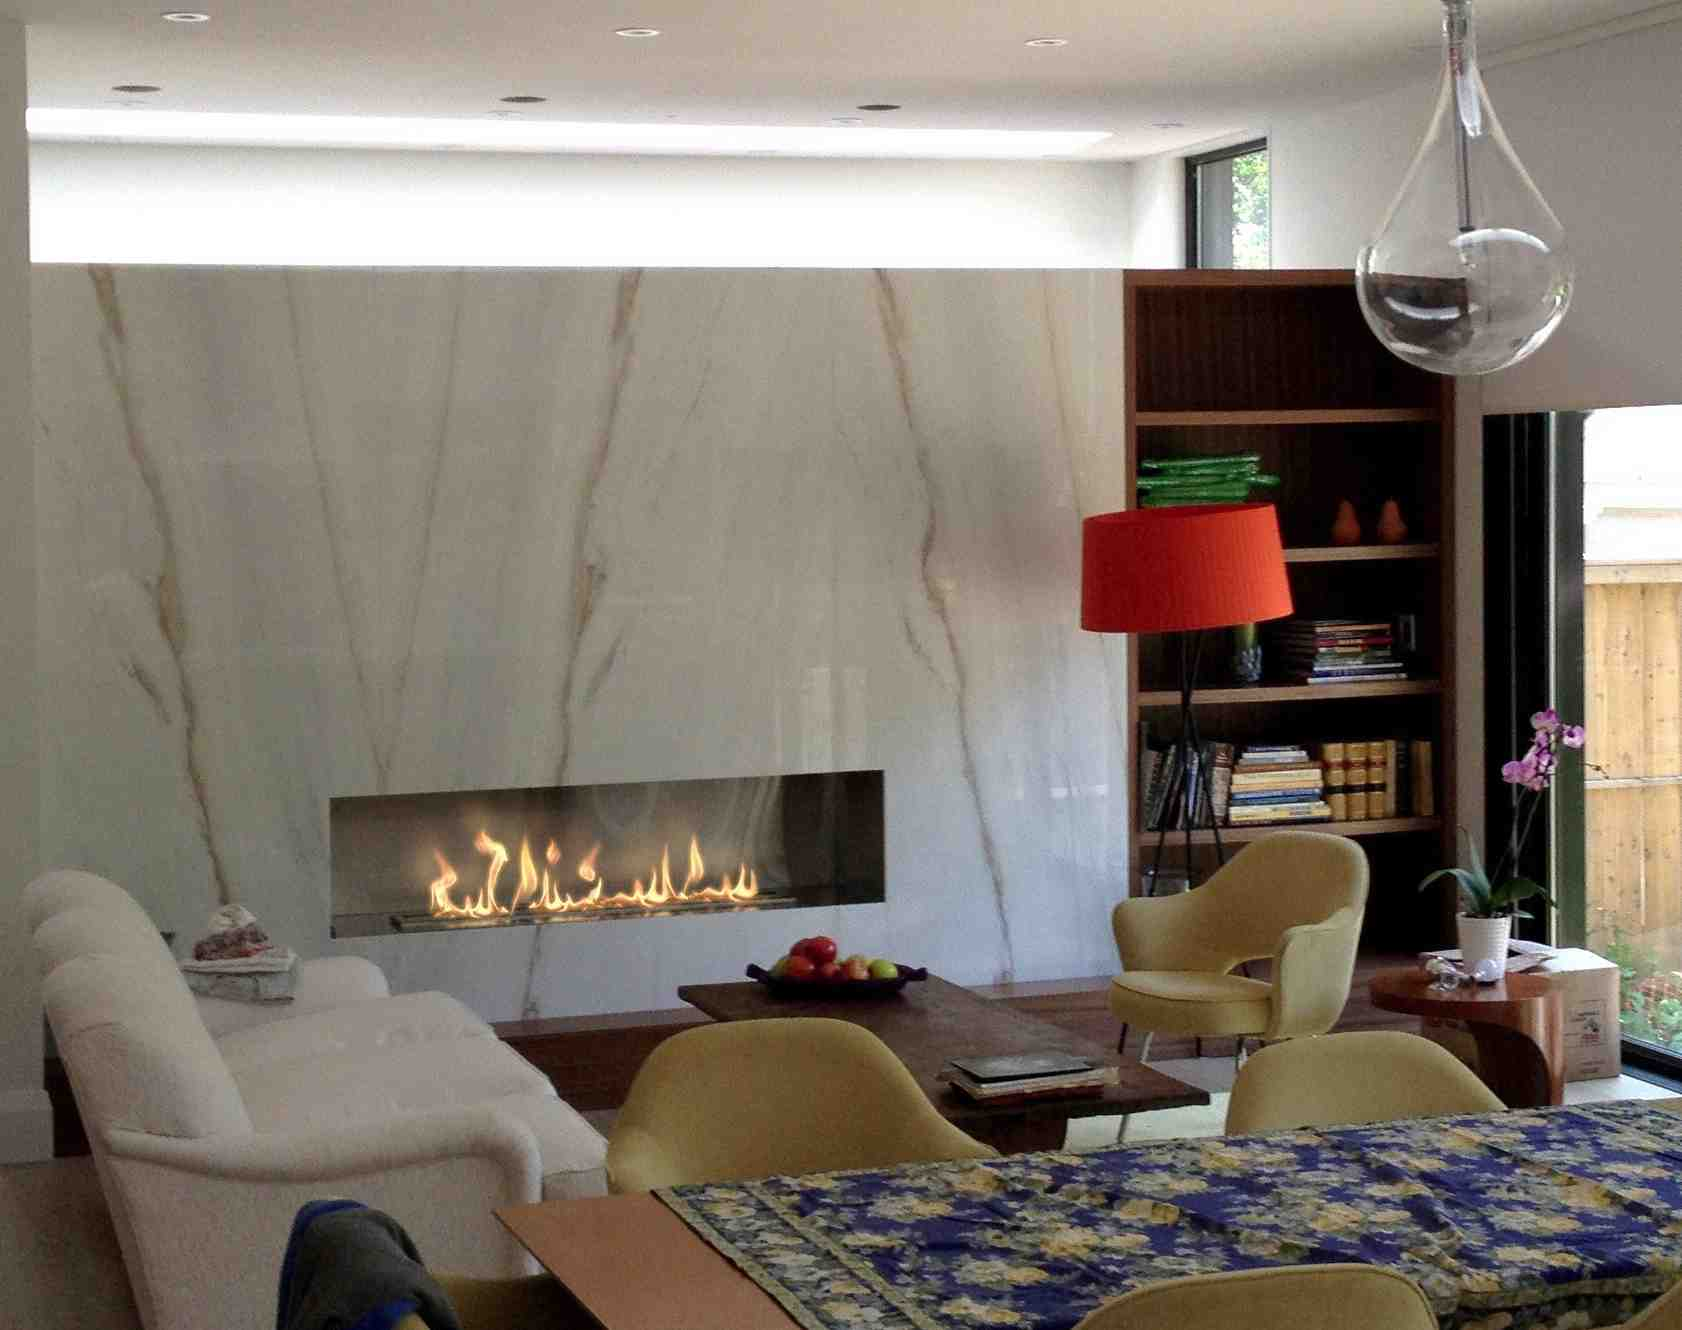 The bio flame company ethanol fireplace products to heat the globe